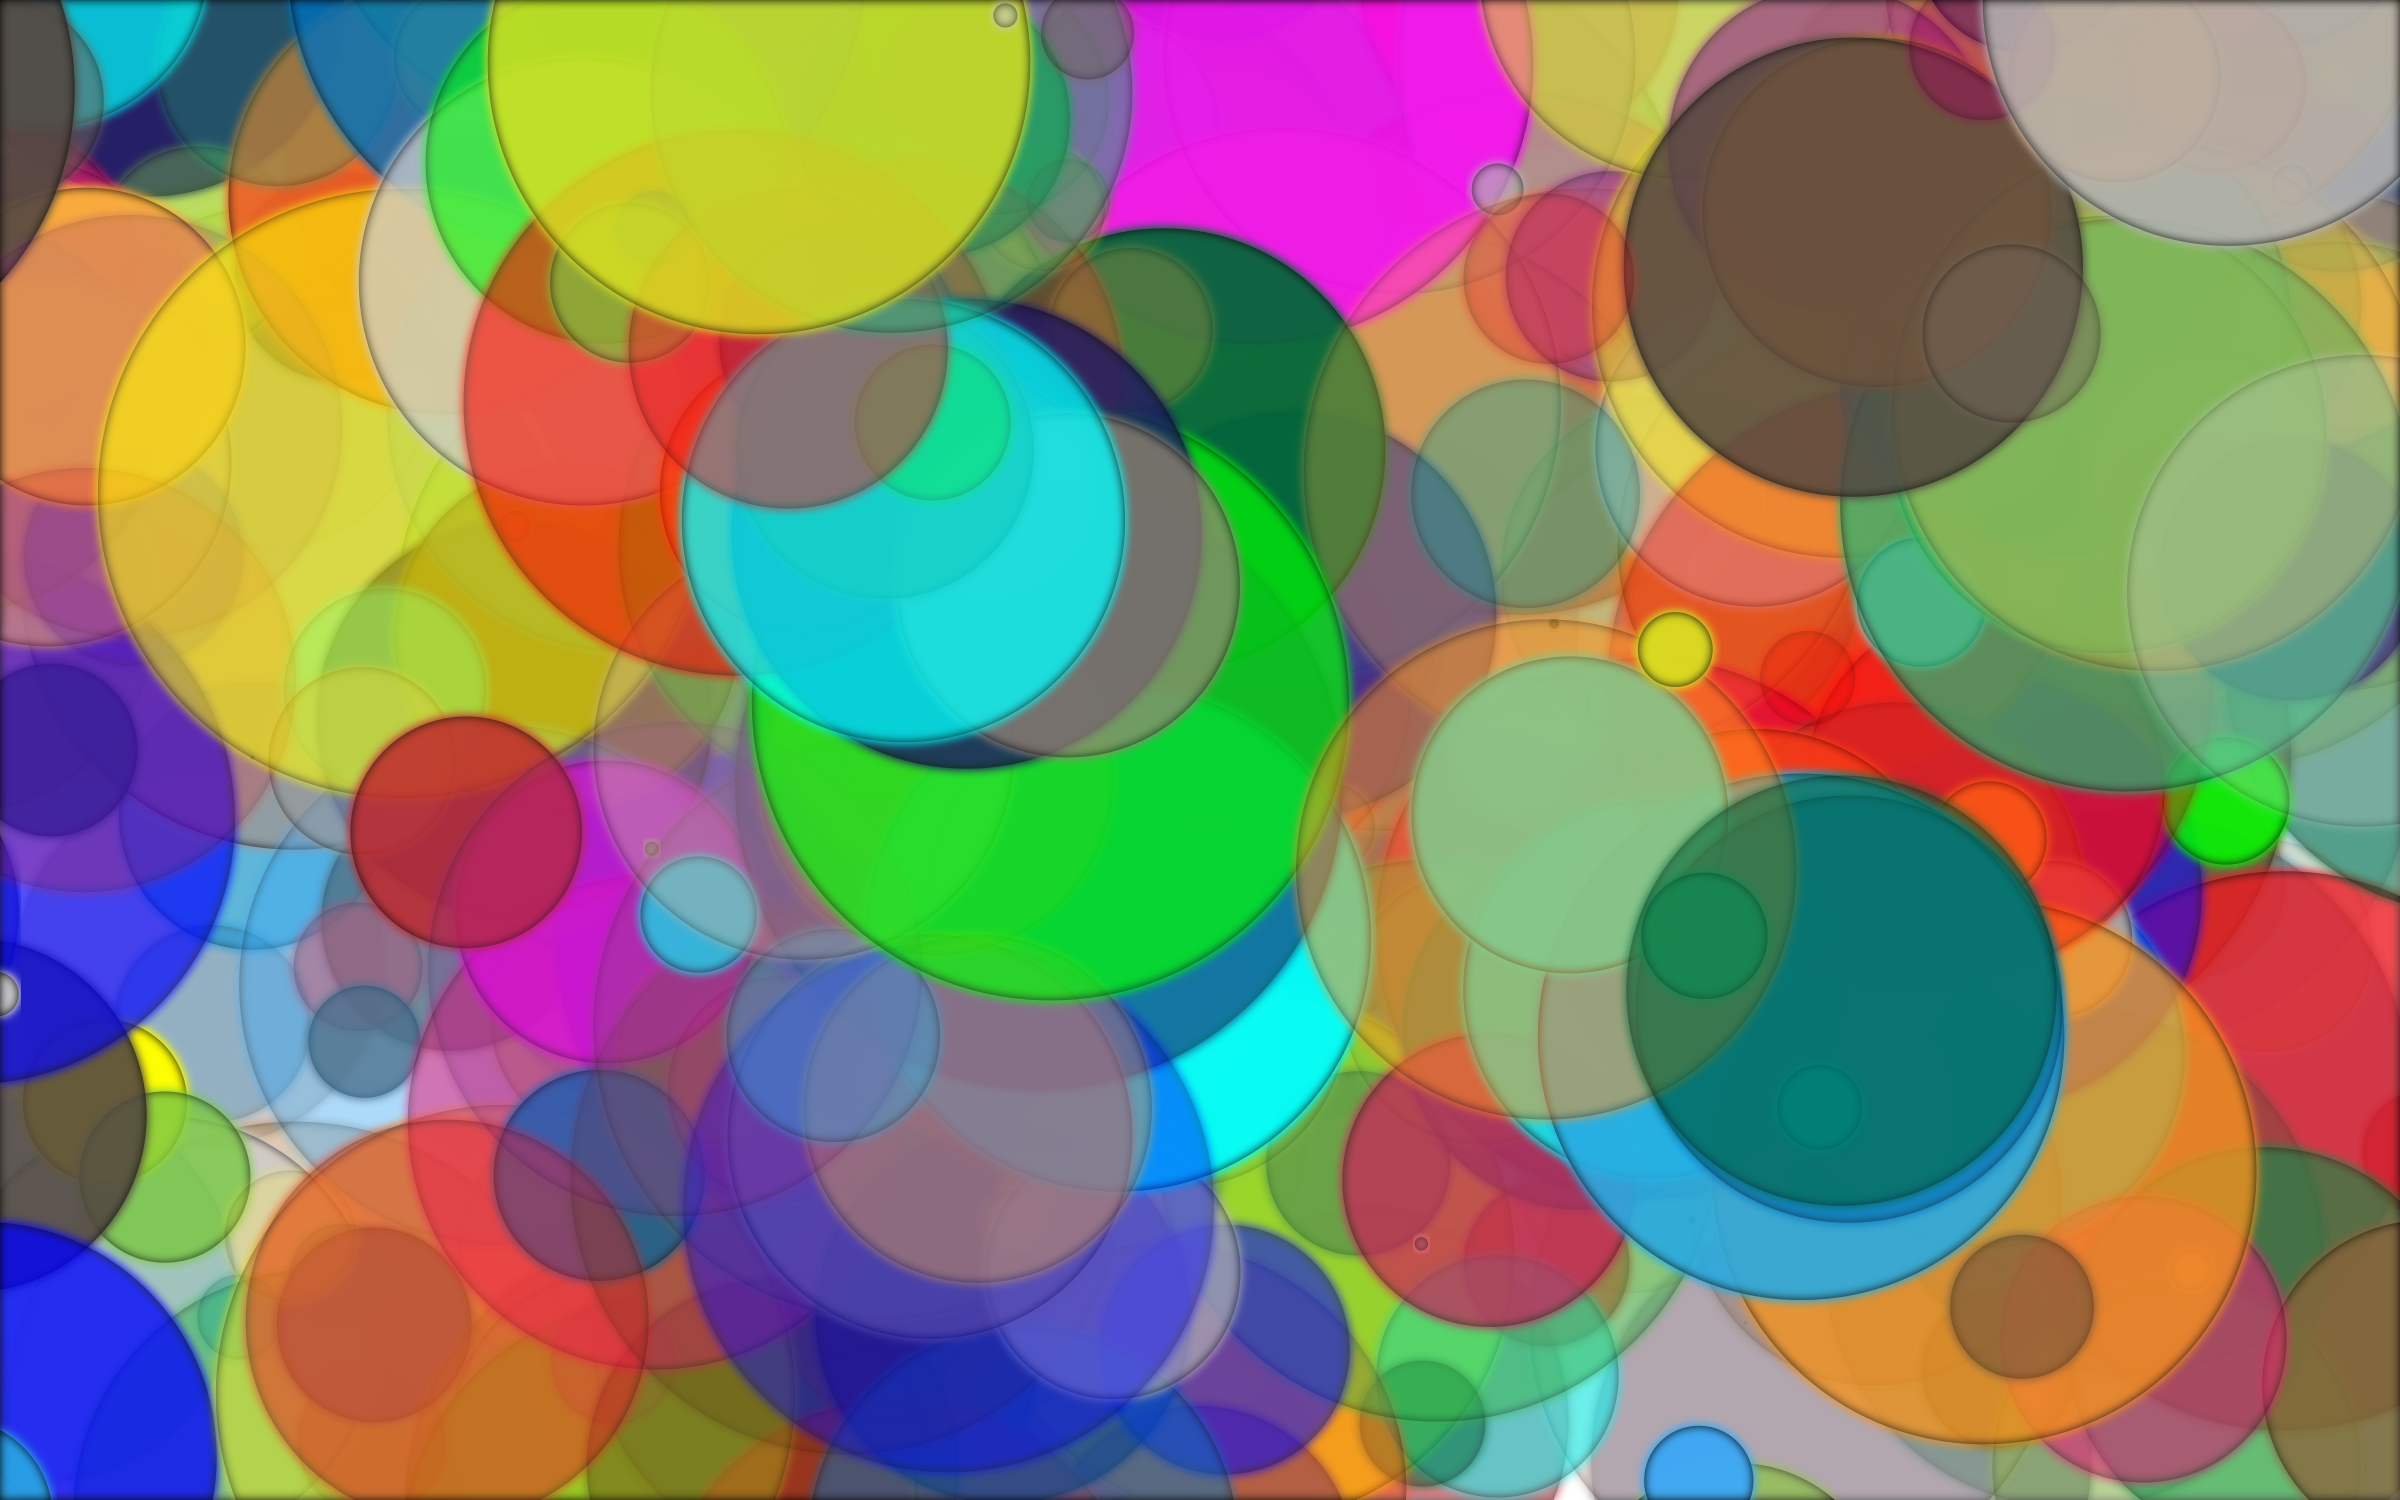 Overlapping Circles Background 7 by GDJ